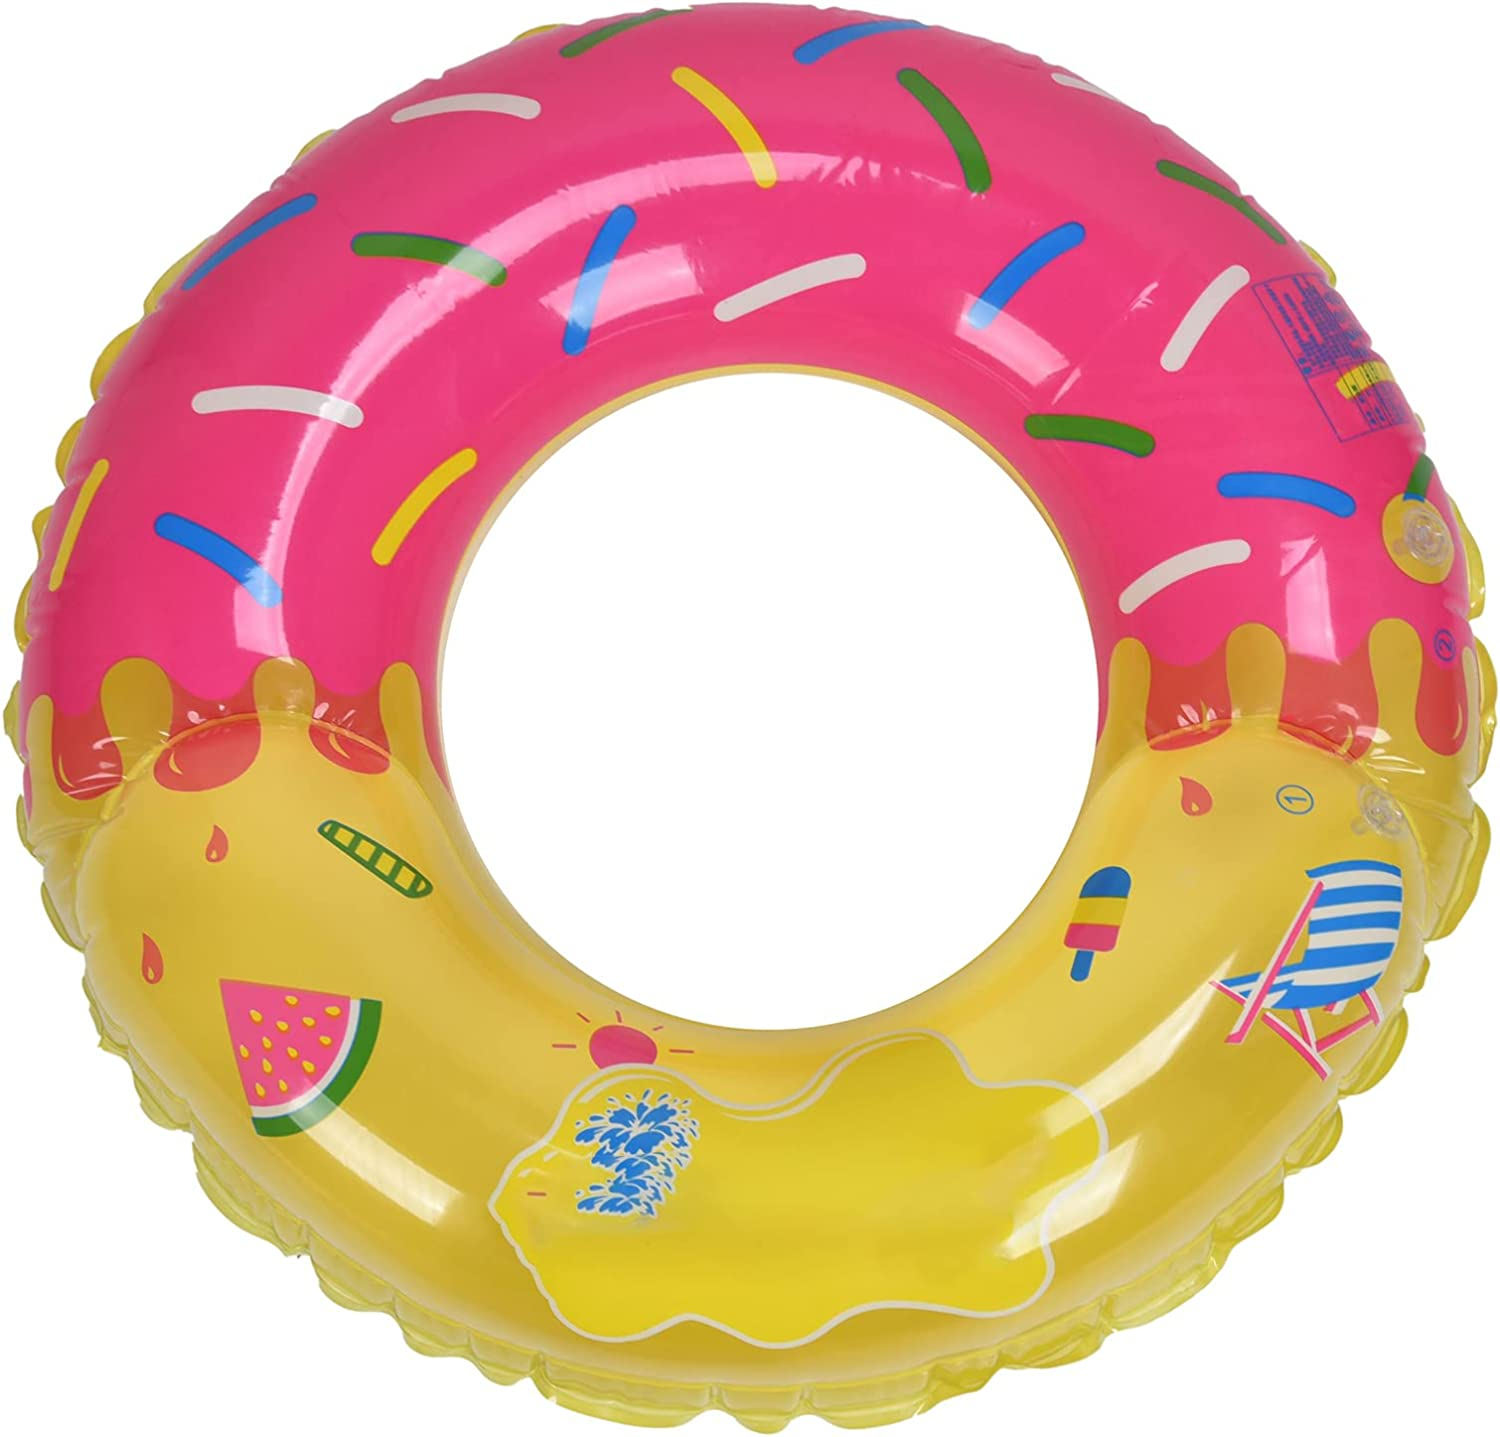 URRNDD Weekly update Swimming depot Ring PVC Swim Children Colorful Inflatable